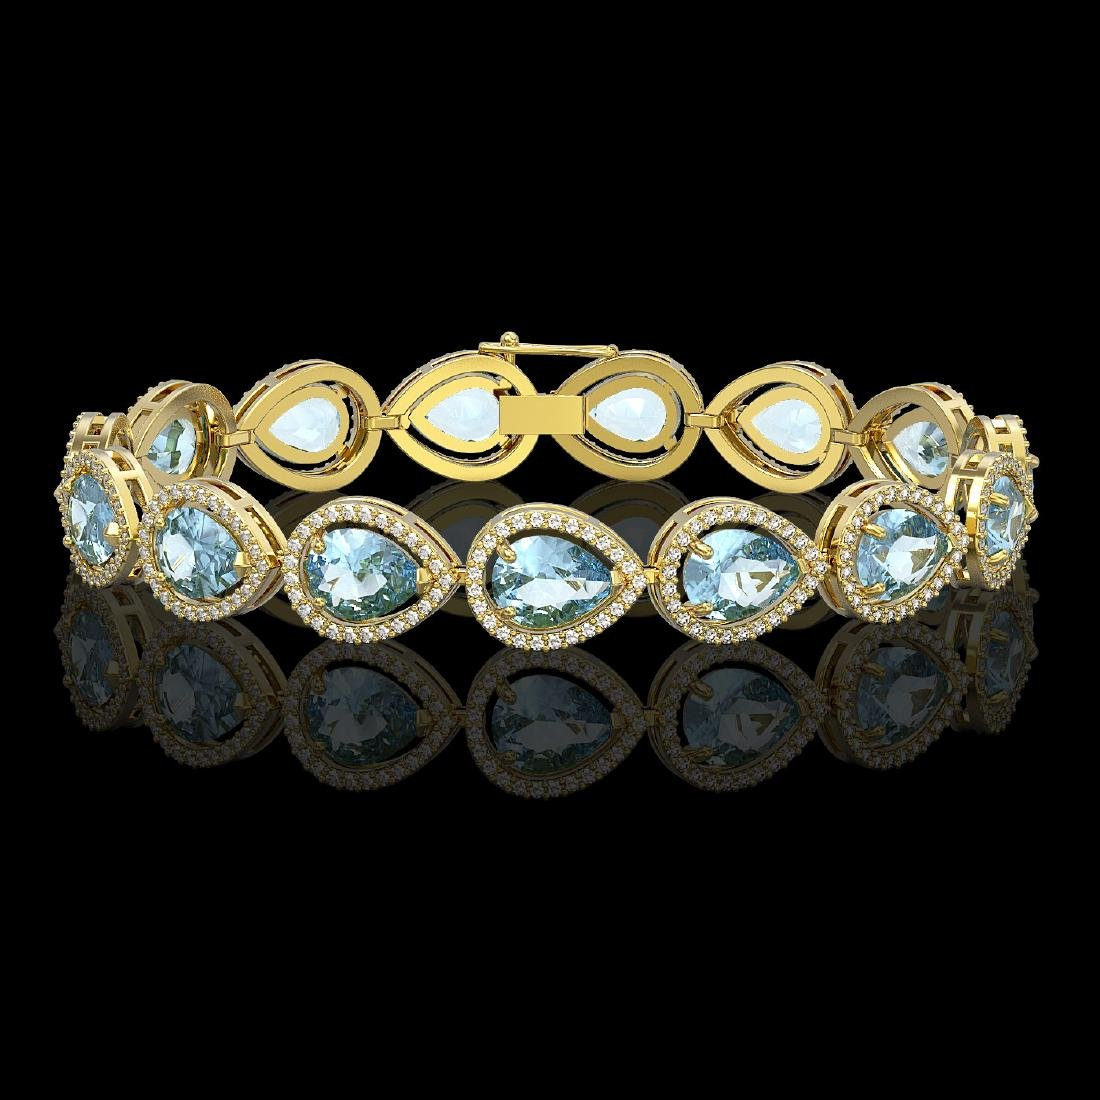 19.85 CTW Aquamarine & Diamond Halo Bracelet 10K Yellow